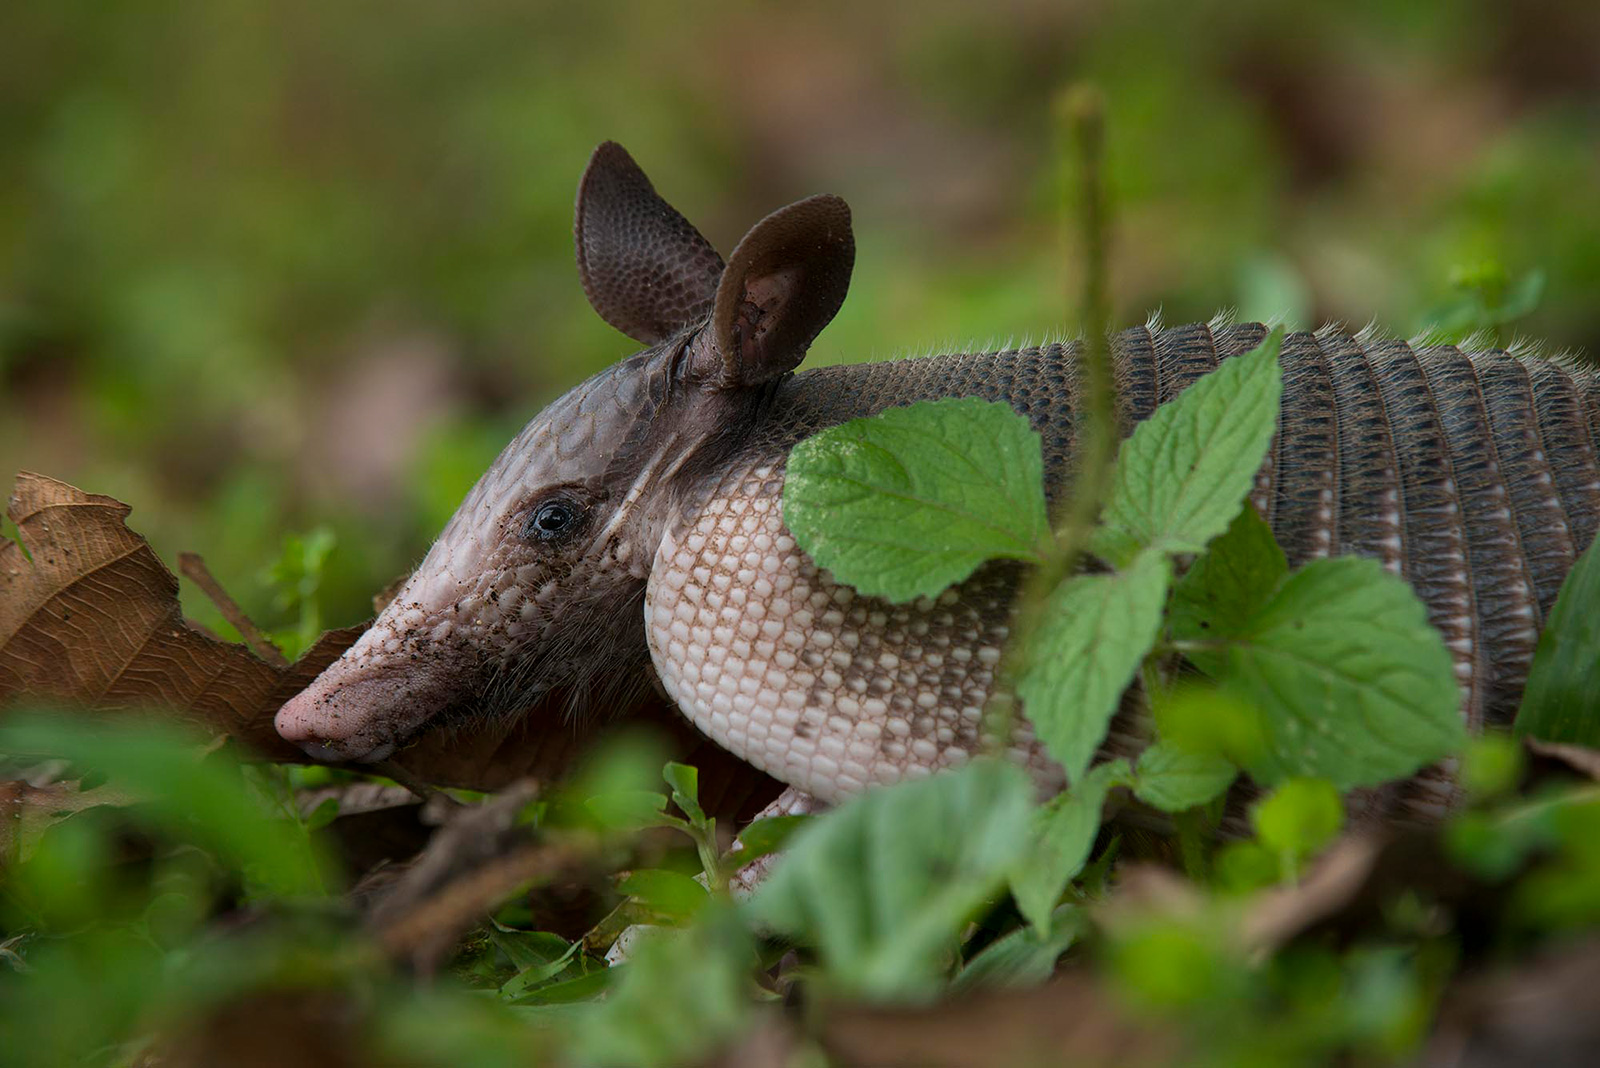 An armadillo on the forest floor